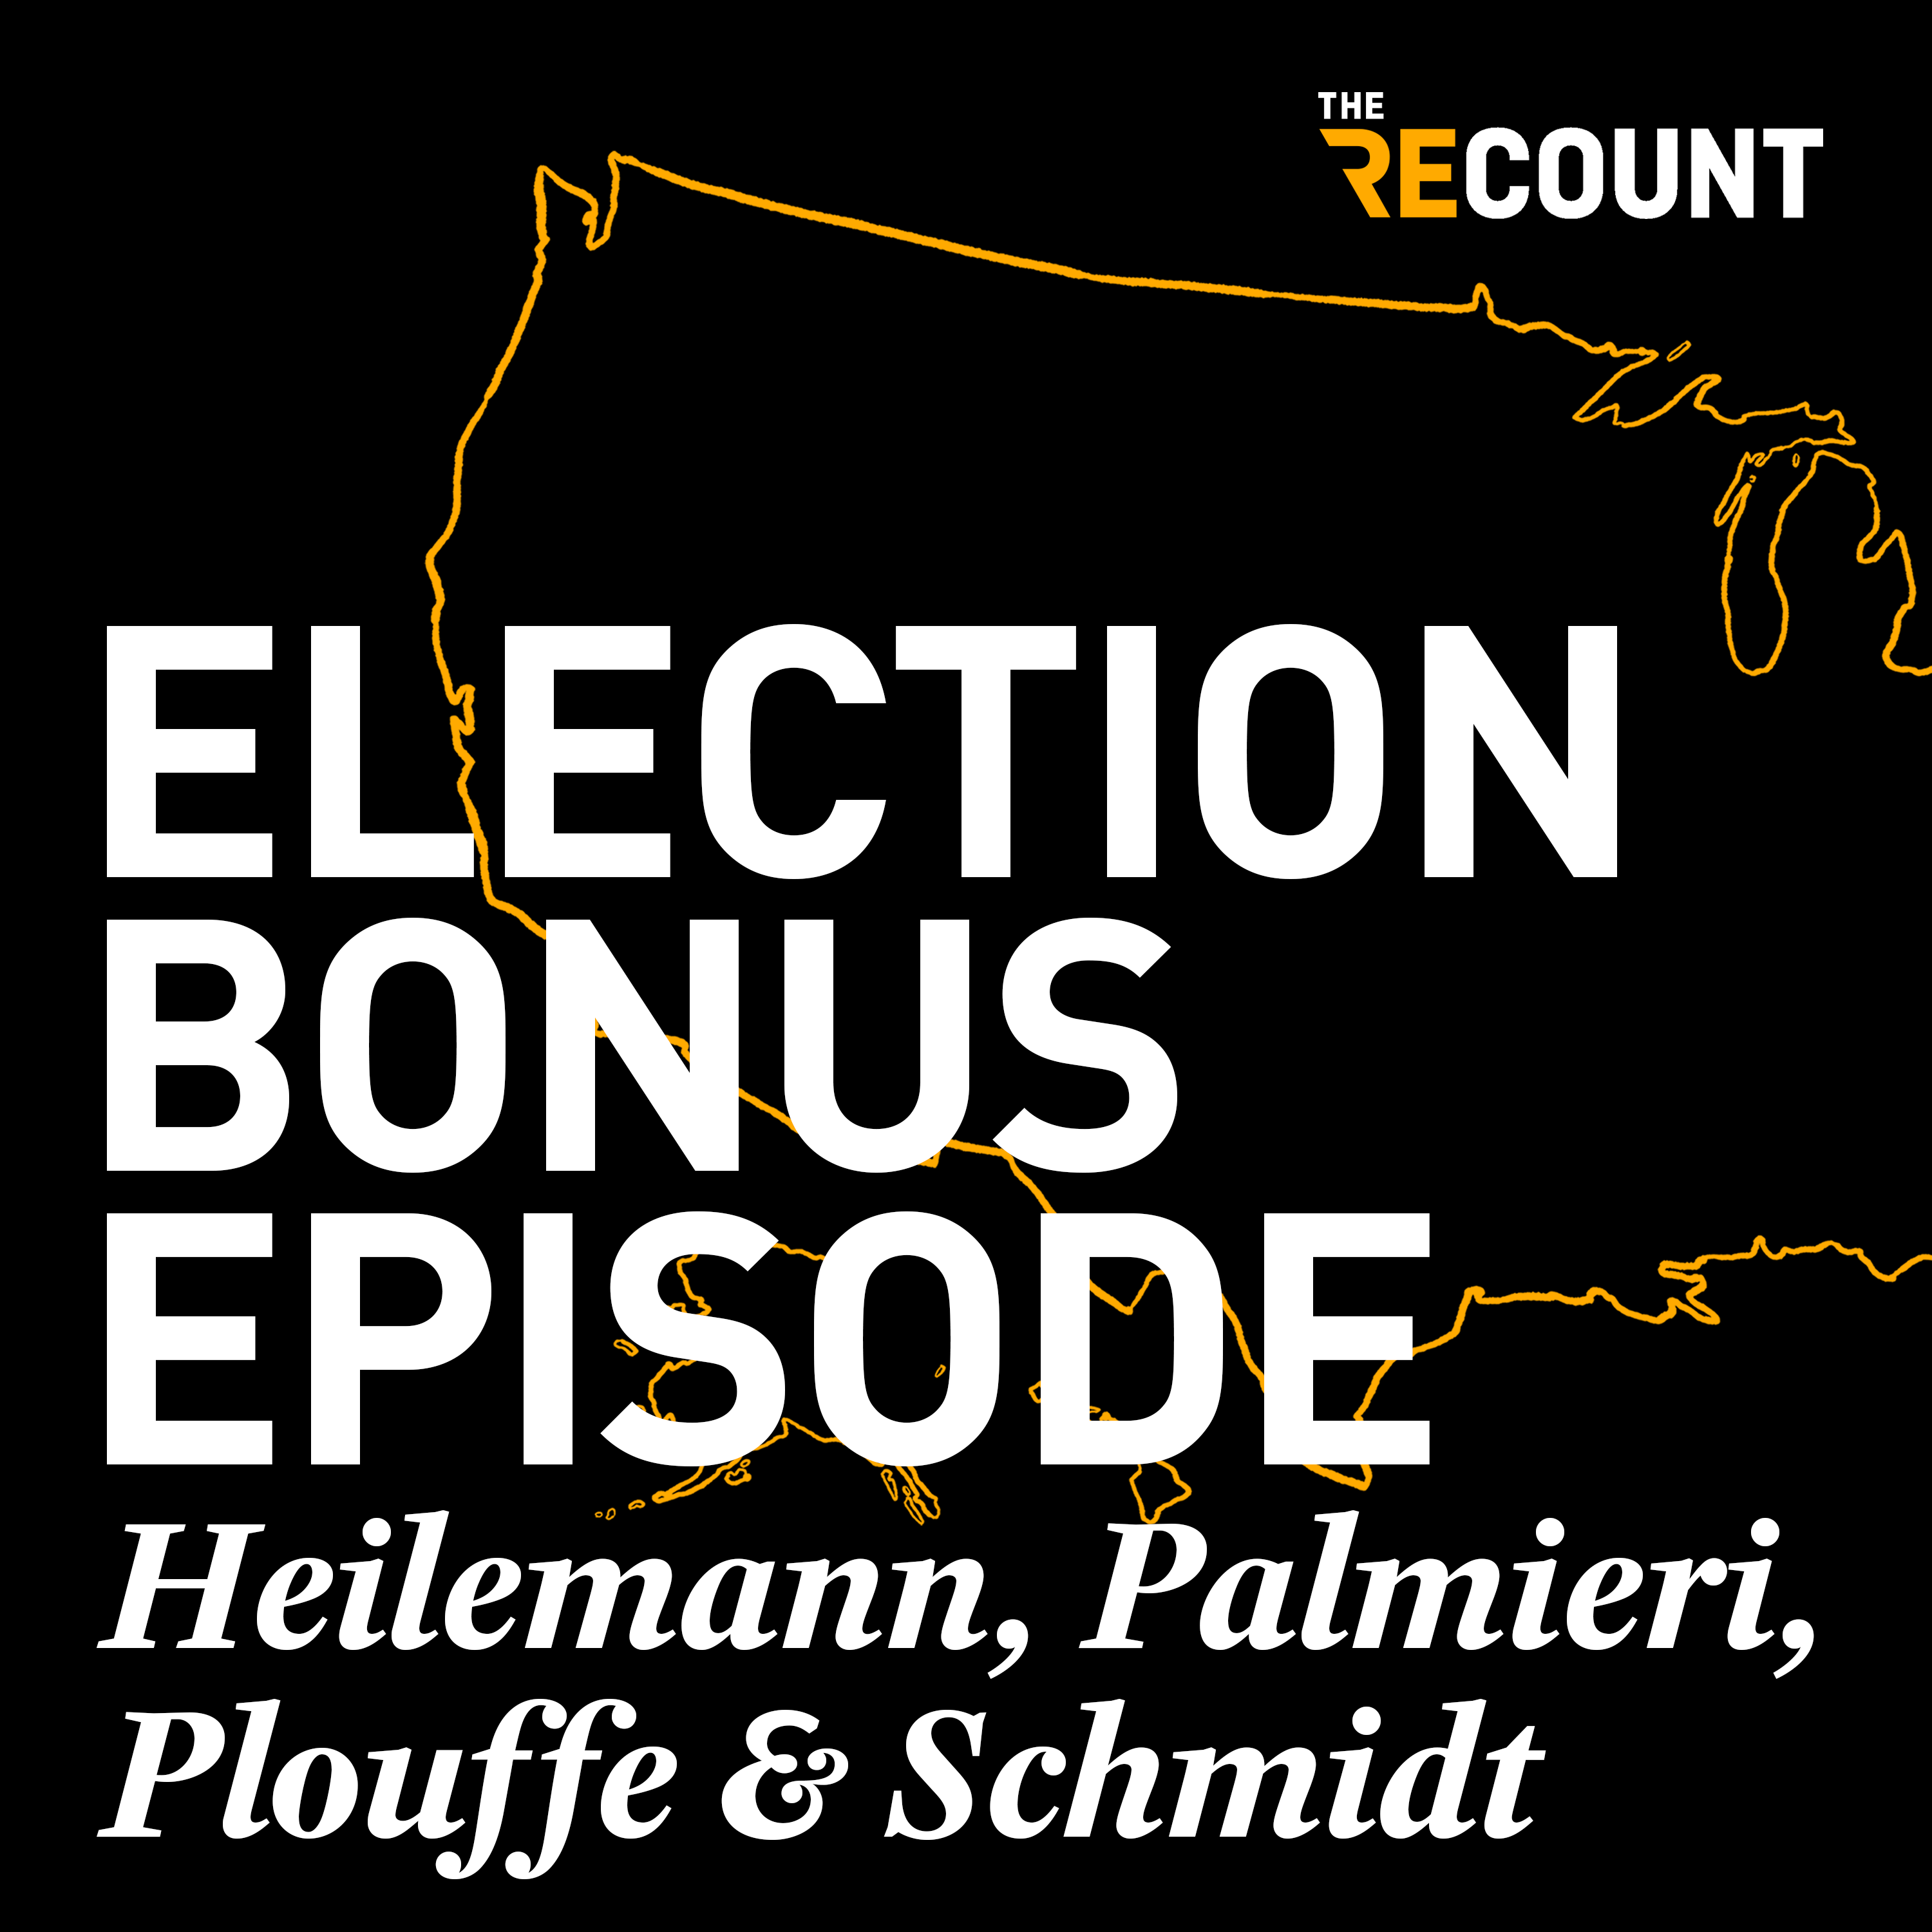 The Recount's Election Bonus Episode